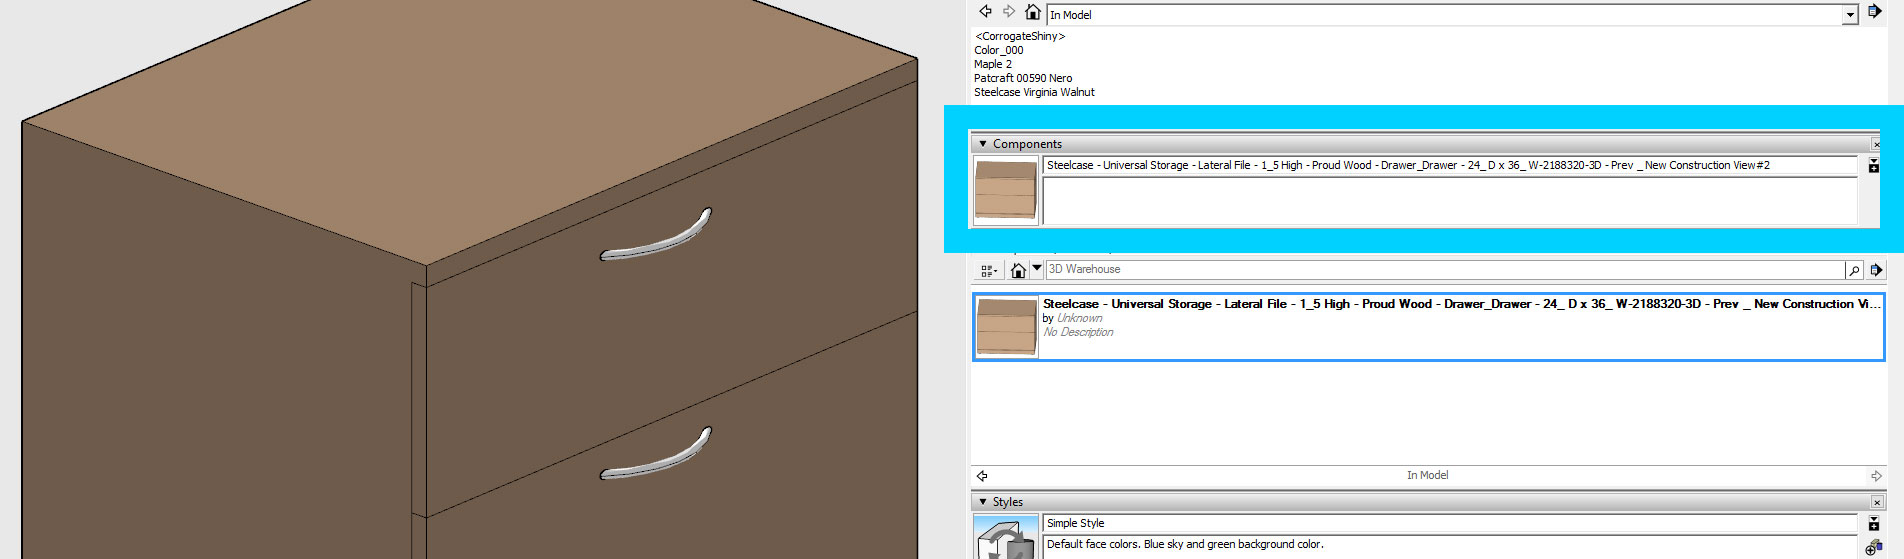 A simple component with a critical flaw - a name that's too long (144 characters).Ensure your SketchUp components have names less than 128 characters in length if you want to import your .skp file into 3ds Max 2016 / 2017.